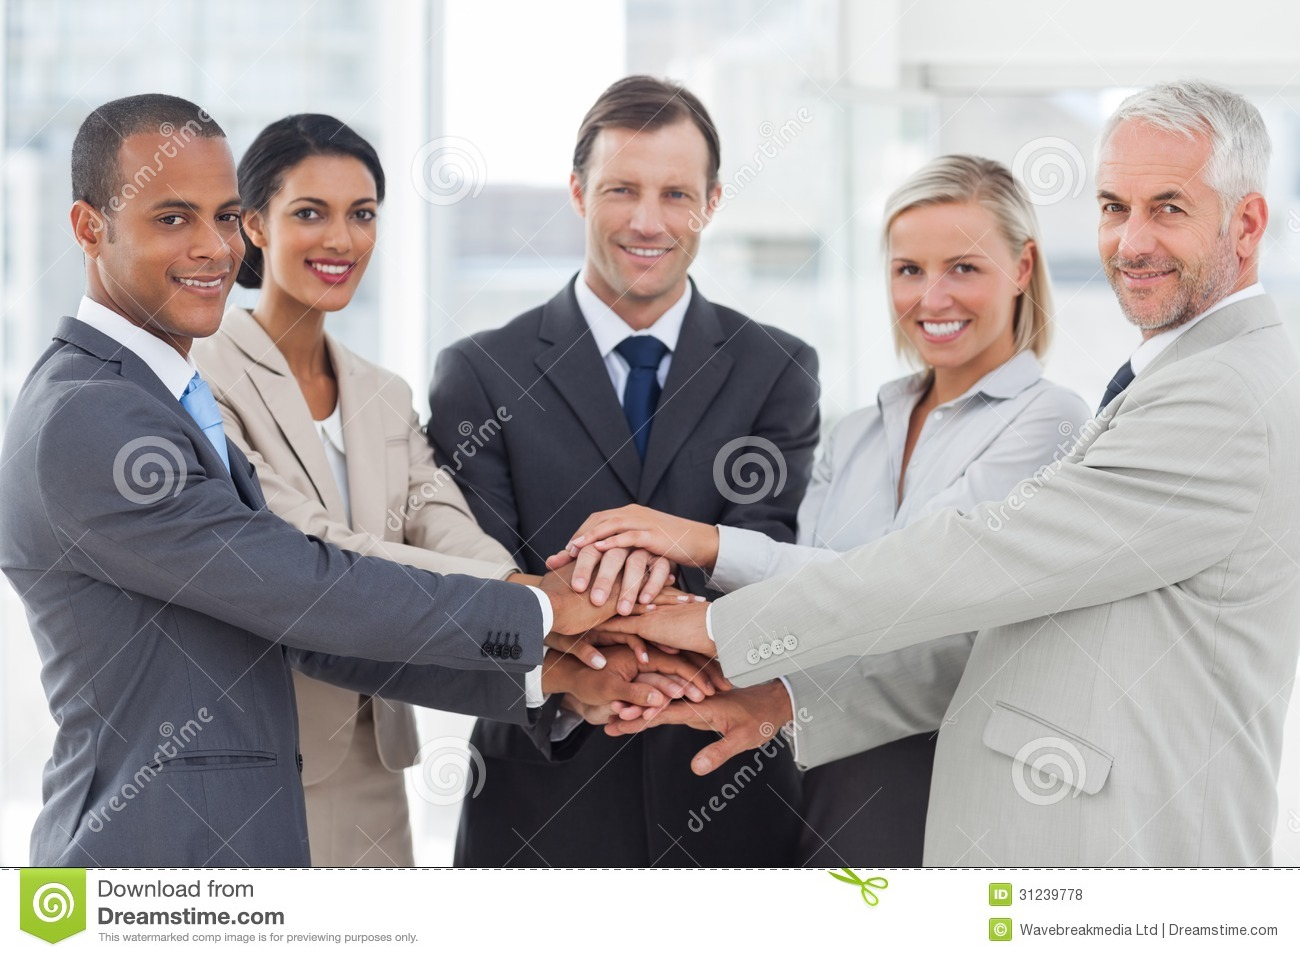 Business people handshake greeting deal at work photo free download - Business Hands People